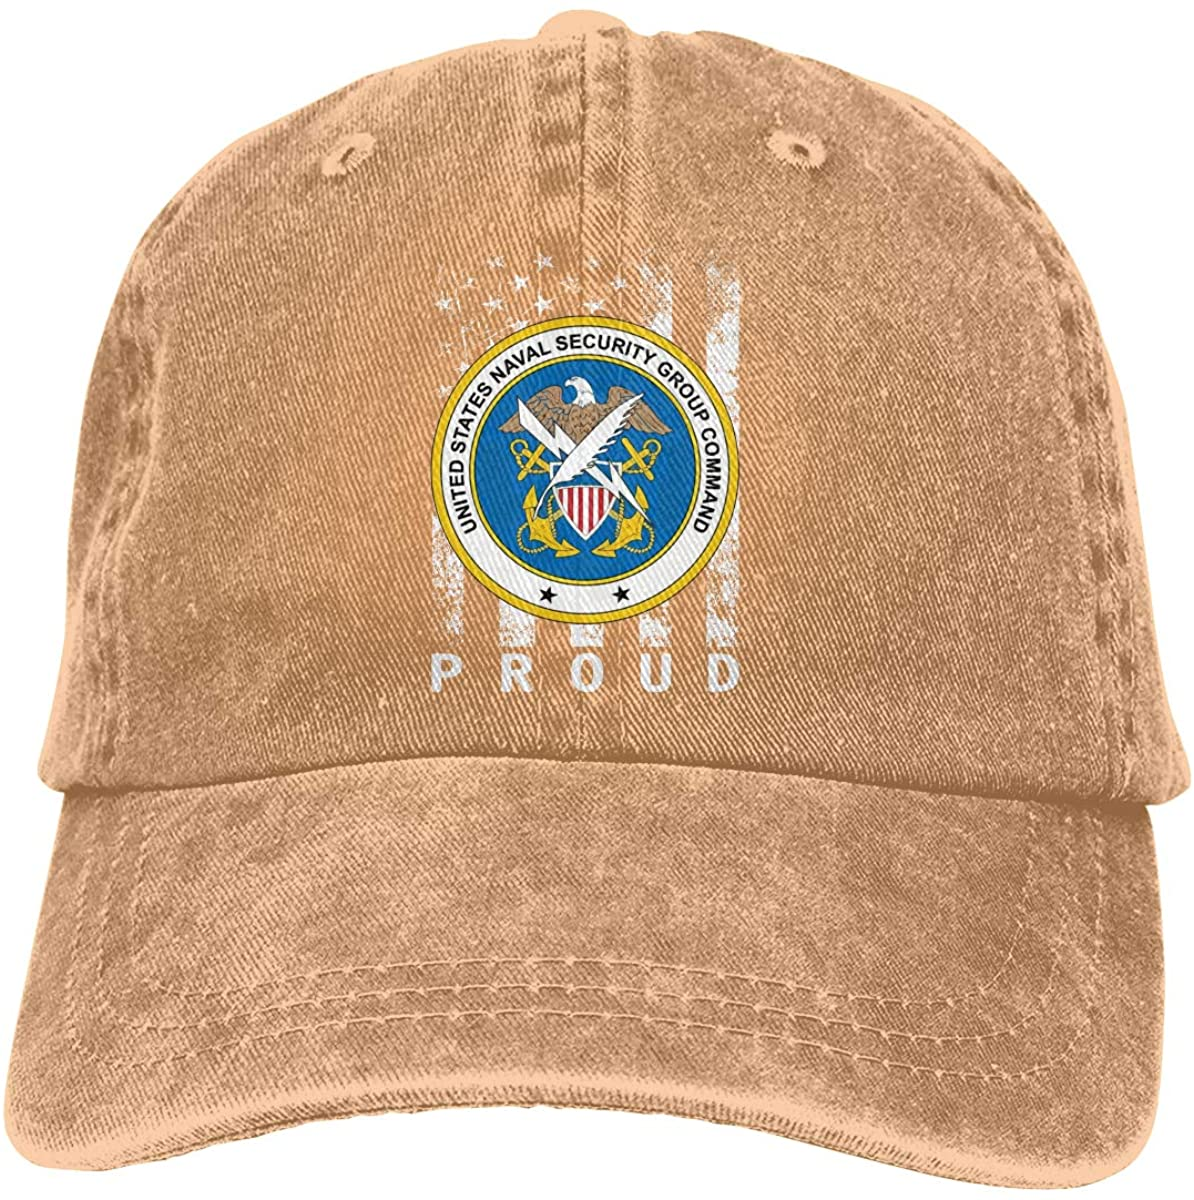 US Navy Naval Security Group Command Unisex Washed Retro Proud American Adjustable Baseball Cap Dad Hat